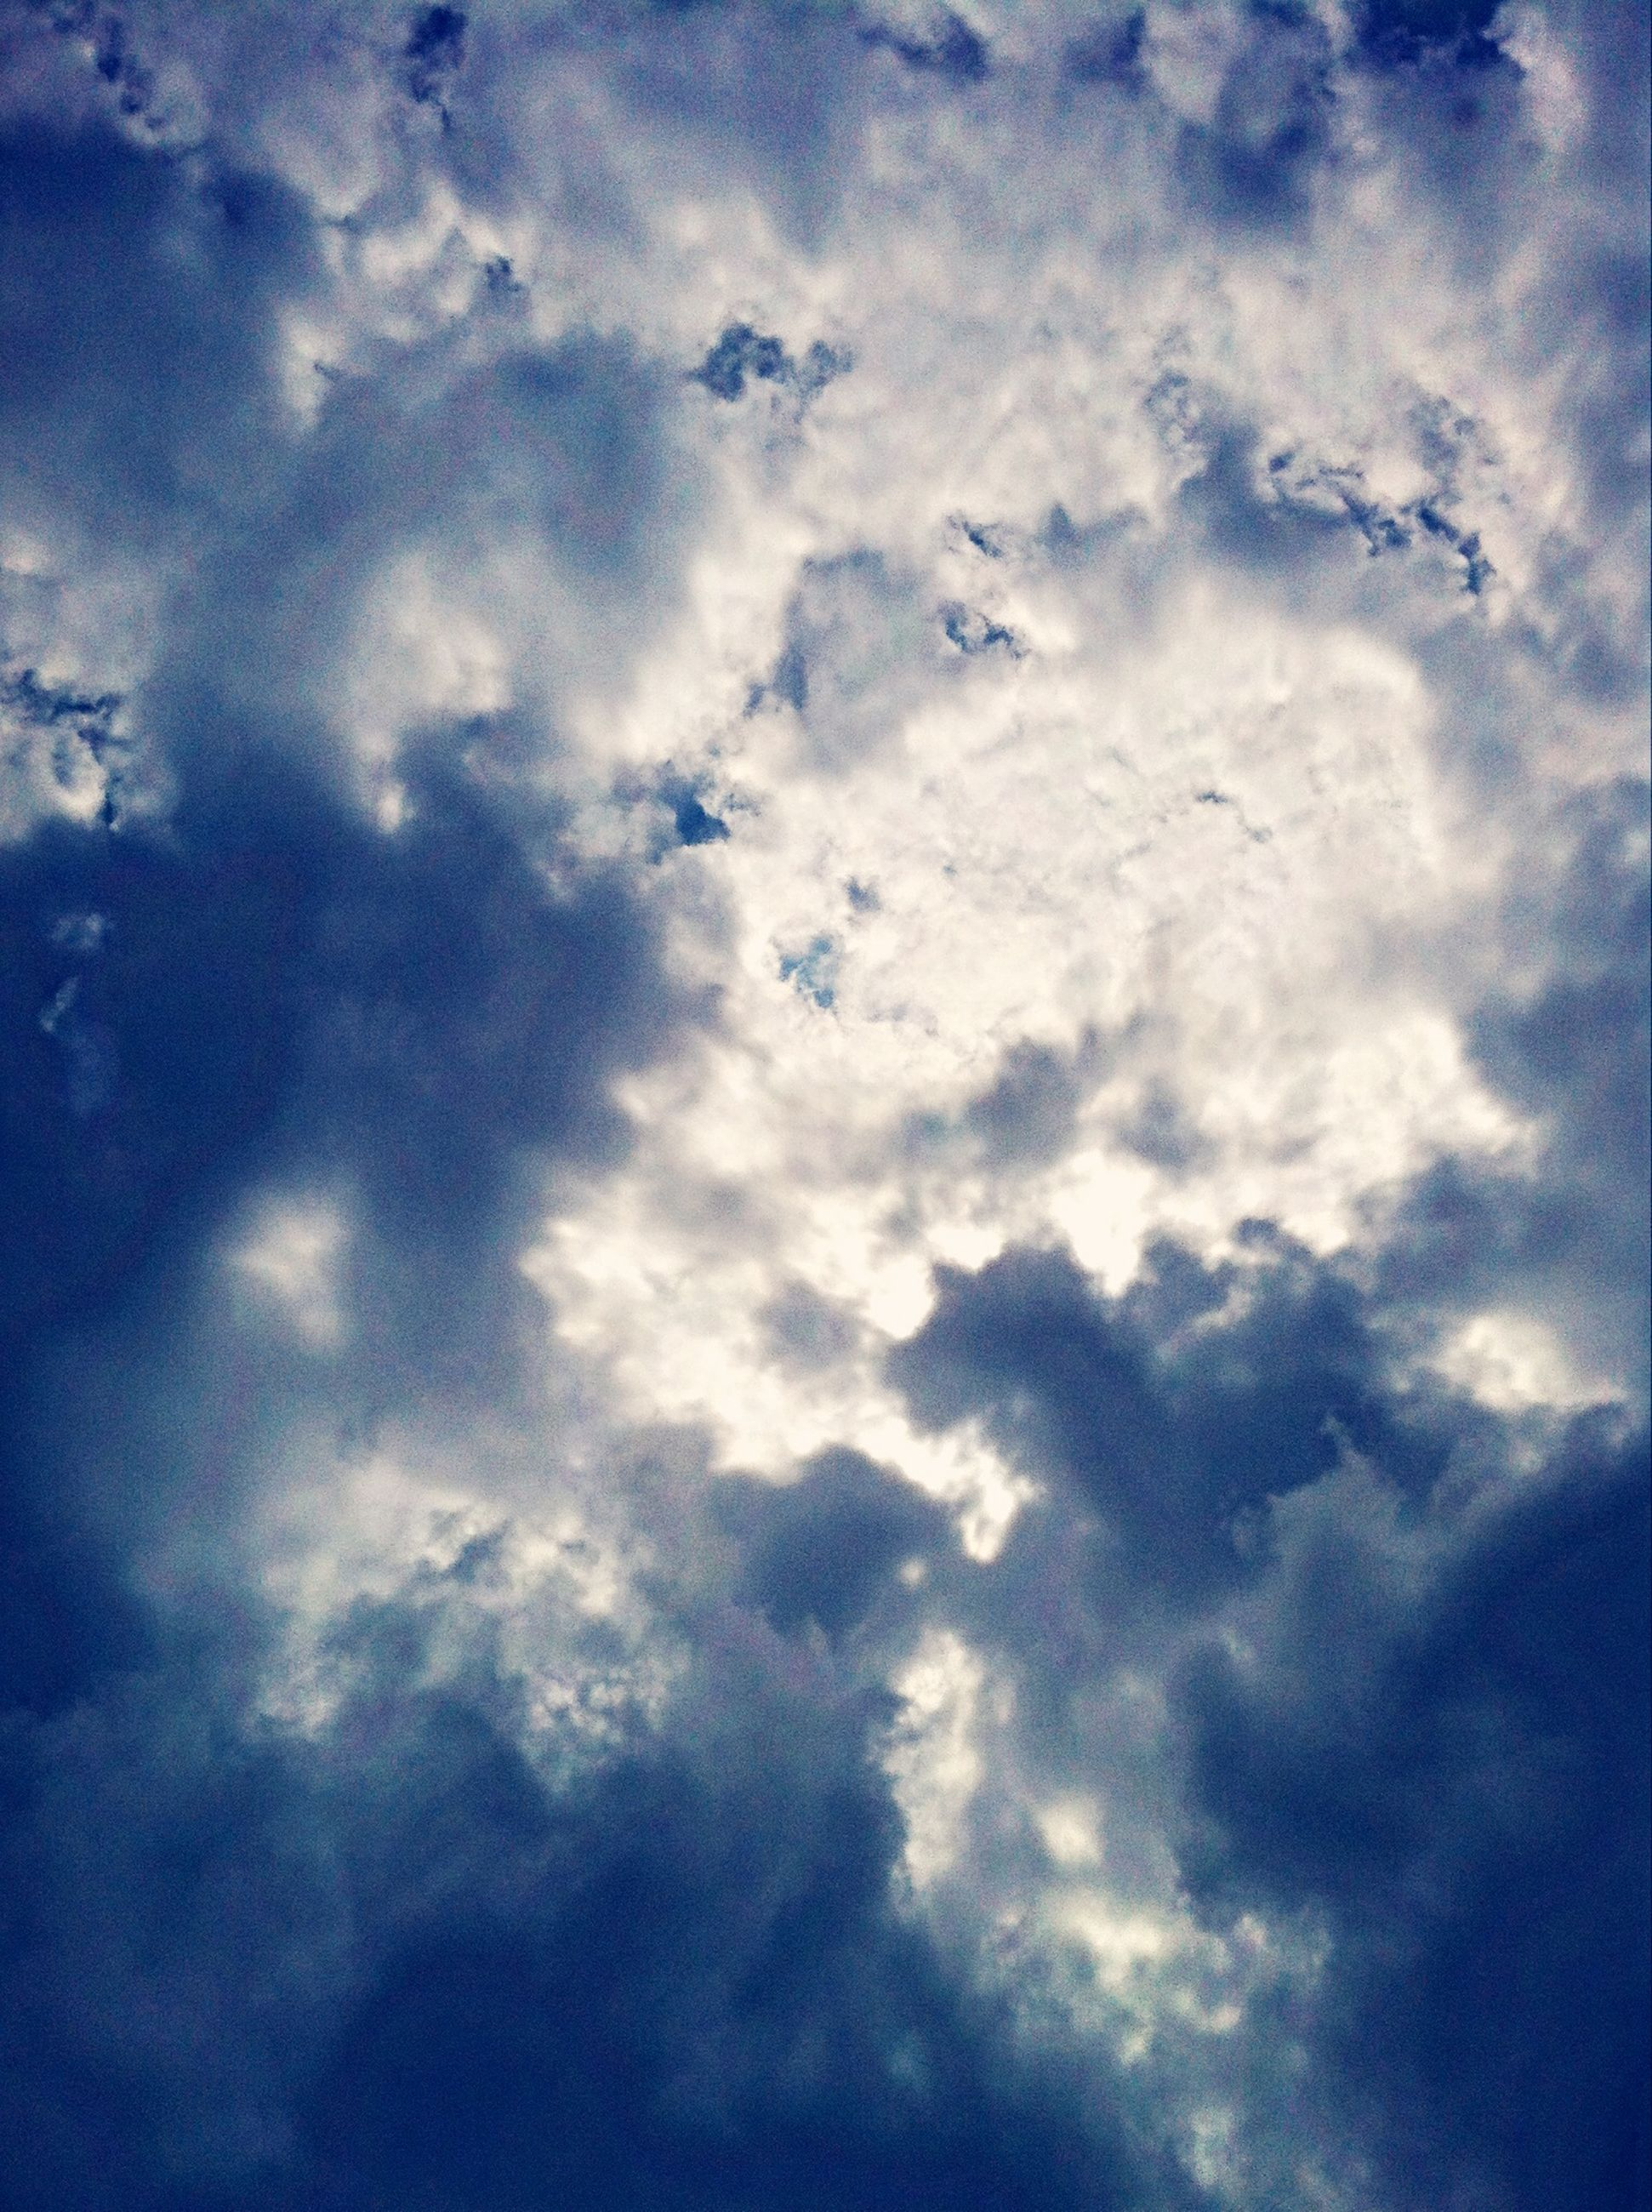 low angle view, sky, cloud - sky, sky only, cloudy, beauty in nature, tranquility, blue, cloudscape, nature, scenics, backgrounds, cloud, tranquil scene, full frame, white color, weather, idyllic, outdoors, day